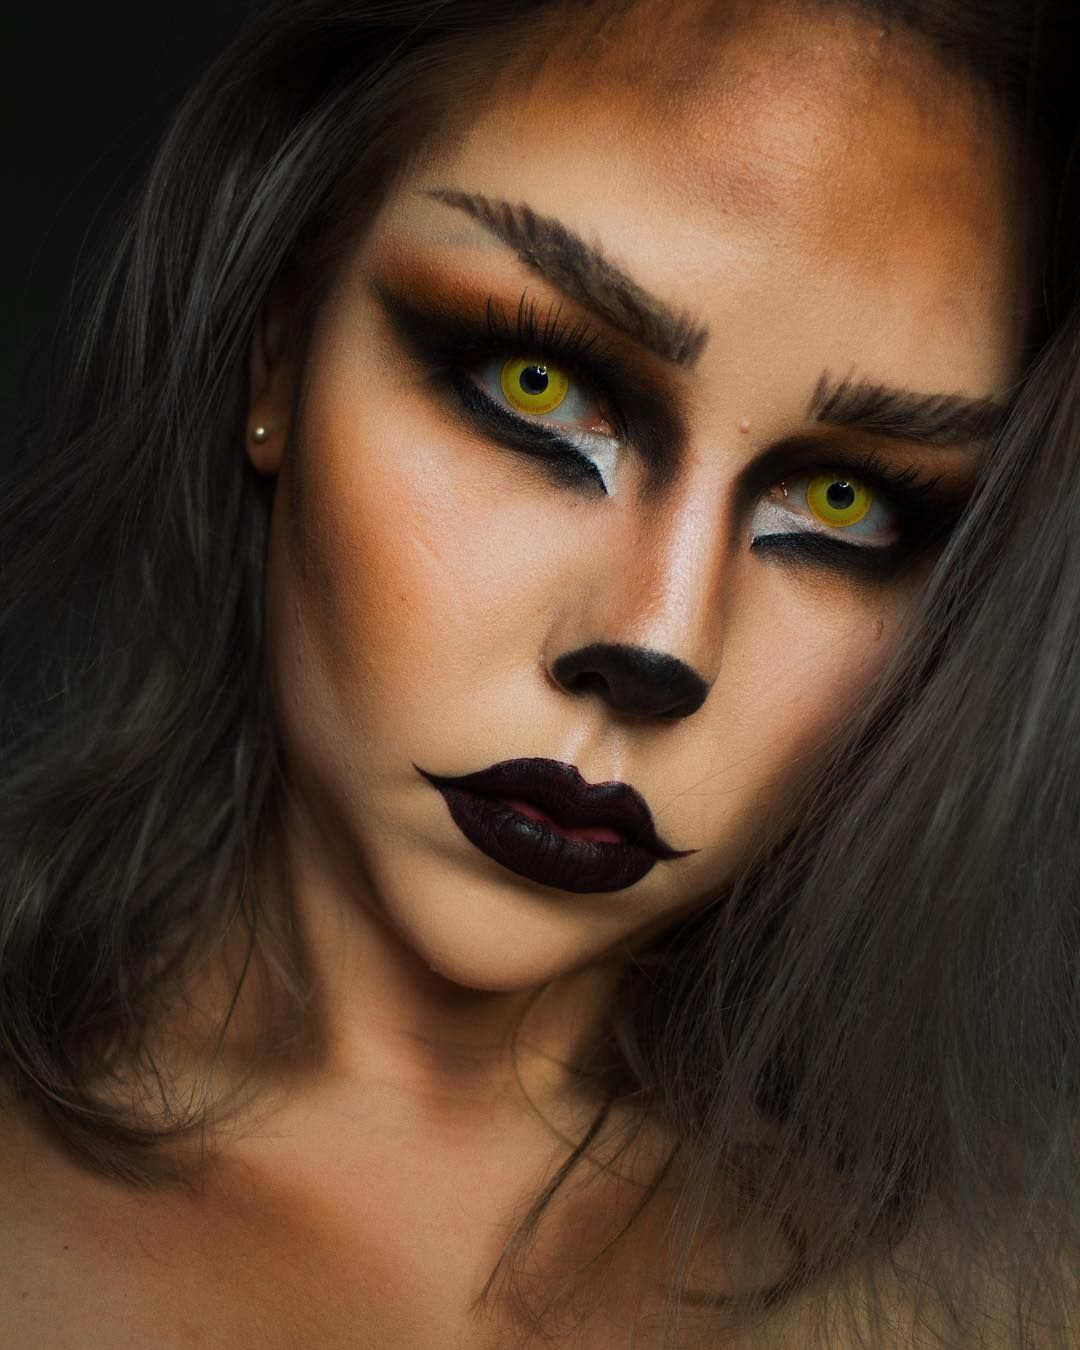 Werwolf Kostum Damen.Werwolf Kostum Google Suche Werewolf Costume Women Google Search Costume Google Goo In 2020 Halloween Makeup Cute Halloween Makeup Halloween Makeup Beard